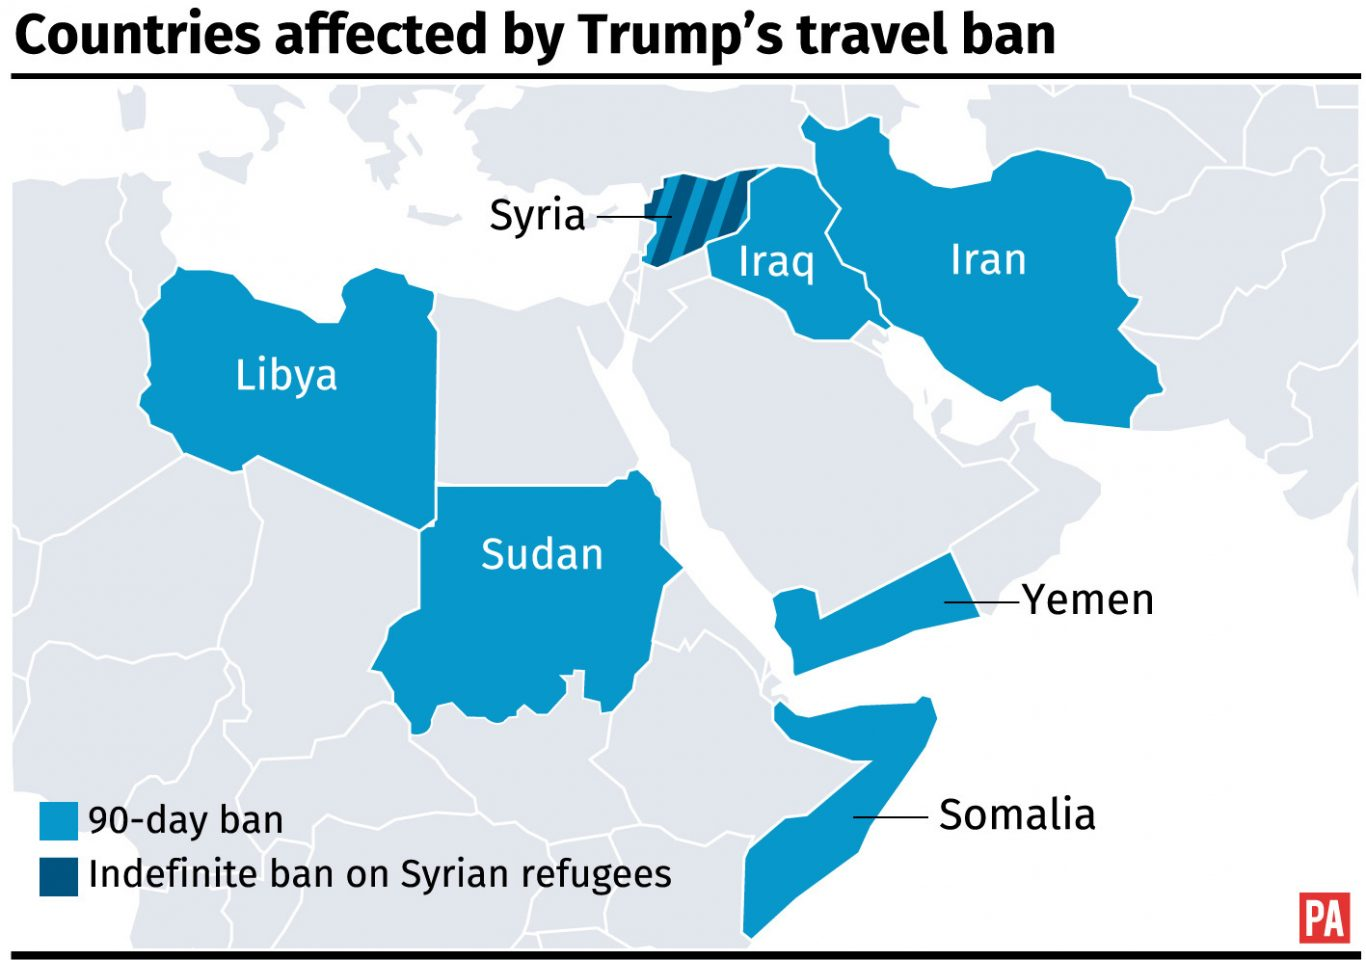 Travel Ban Block Upheld: Supreme Court Remains Only Hope for Trump